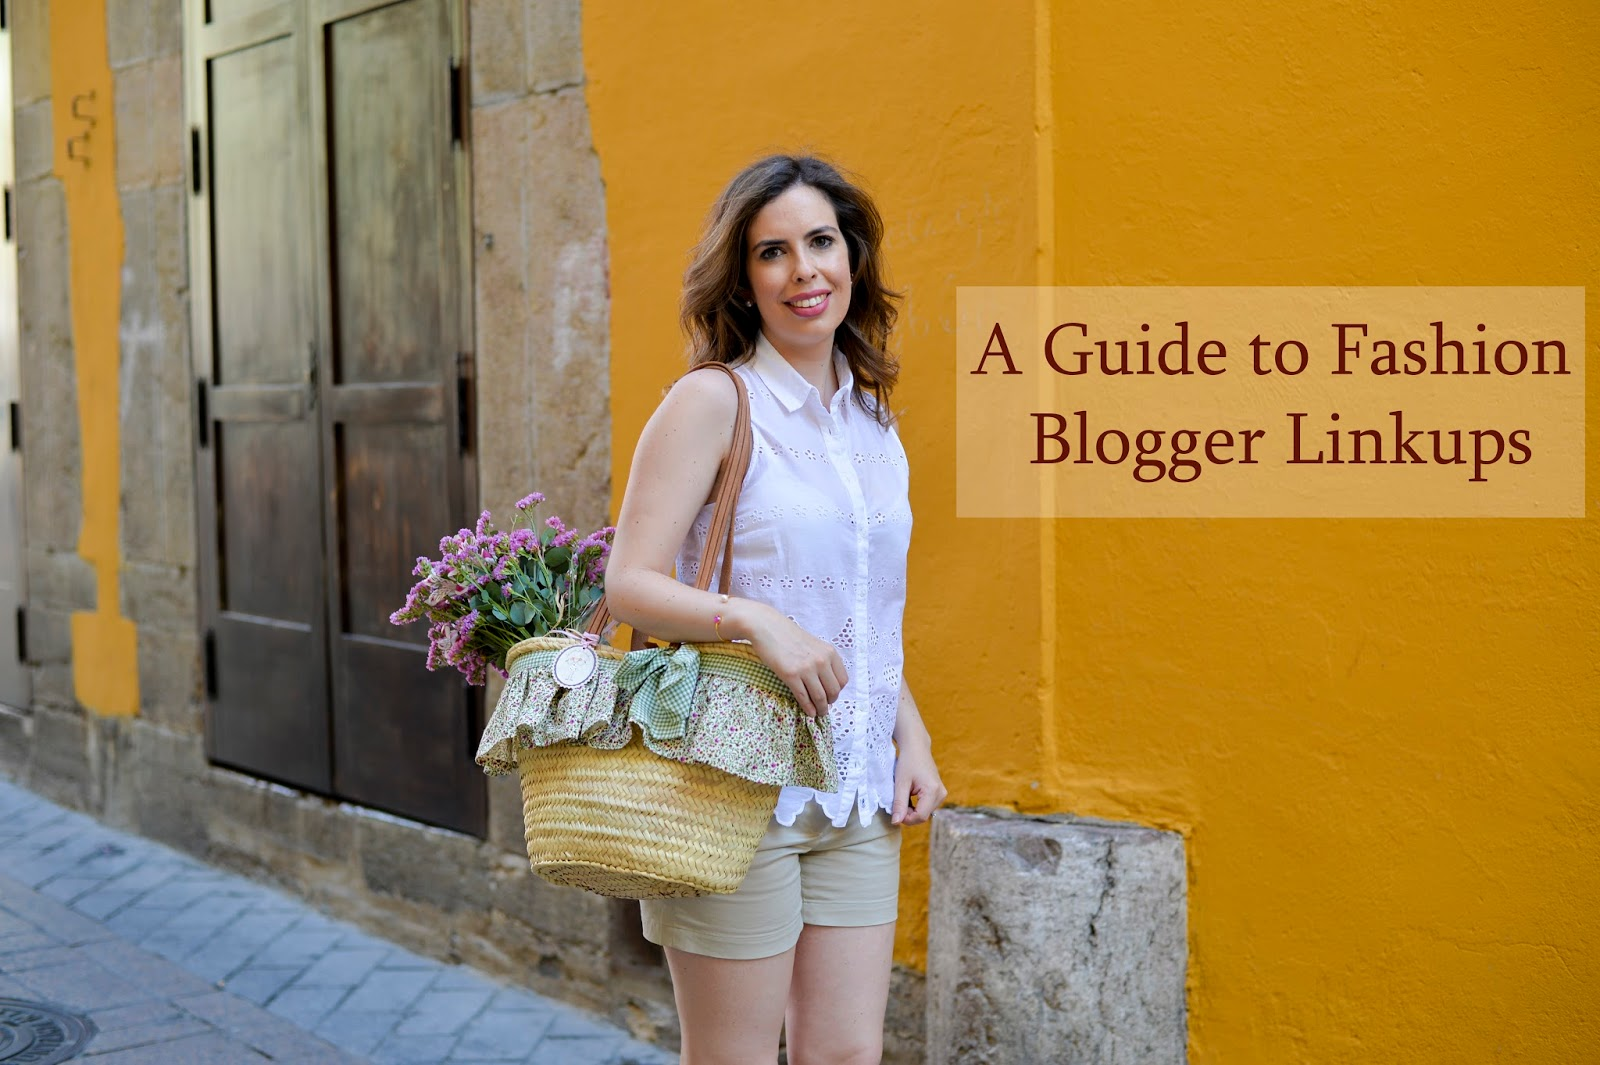 A Guide to Fashion Blogger Linkups